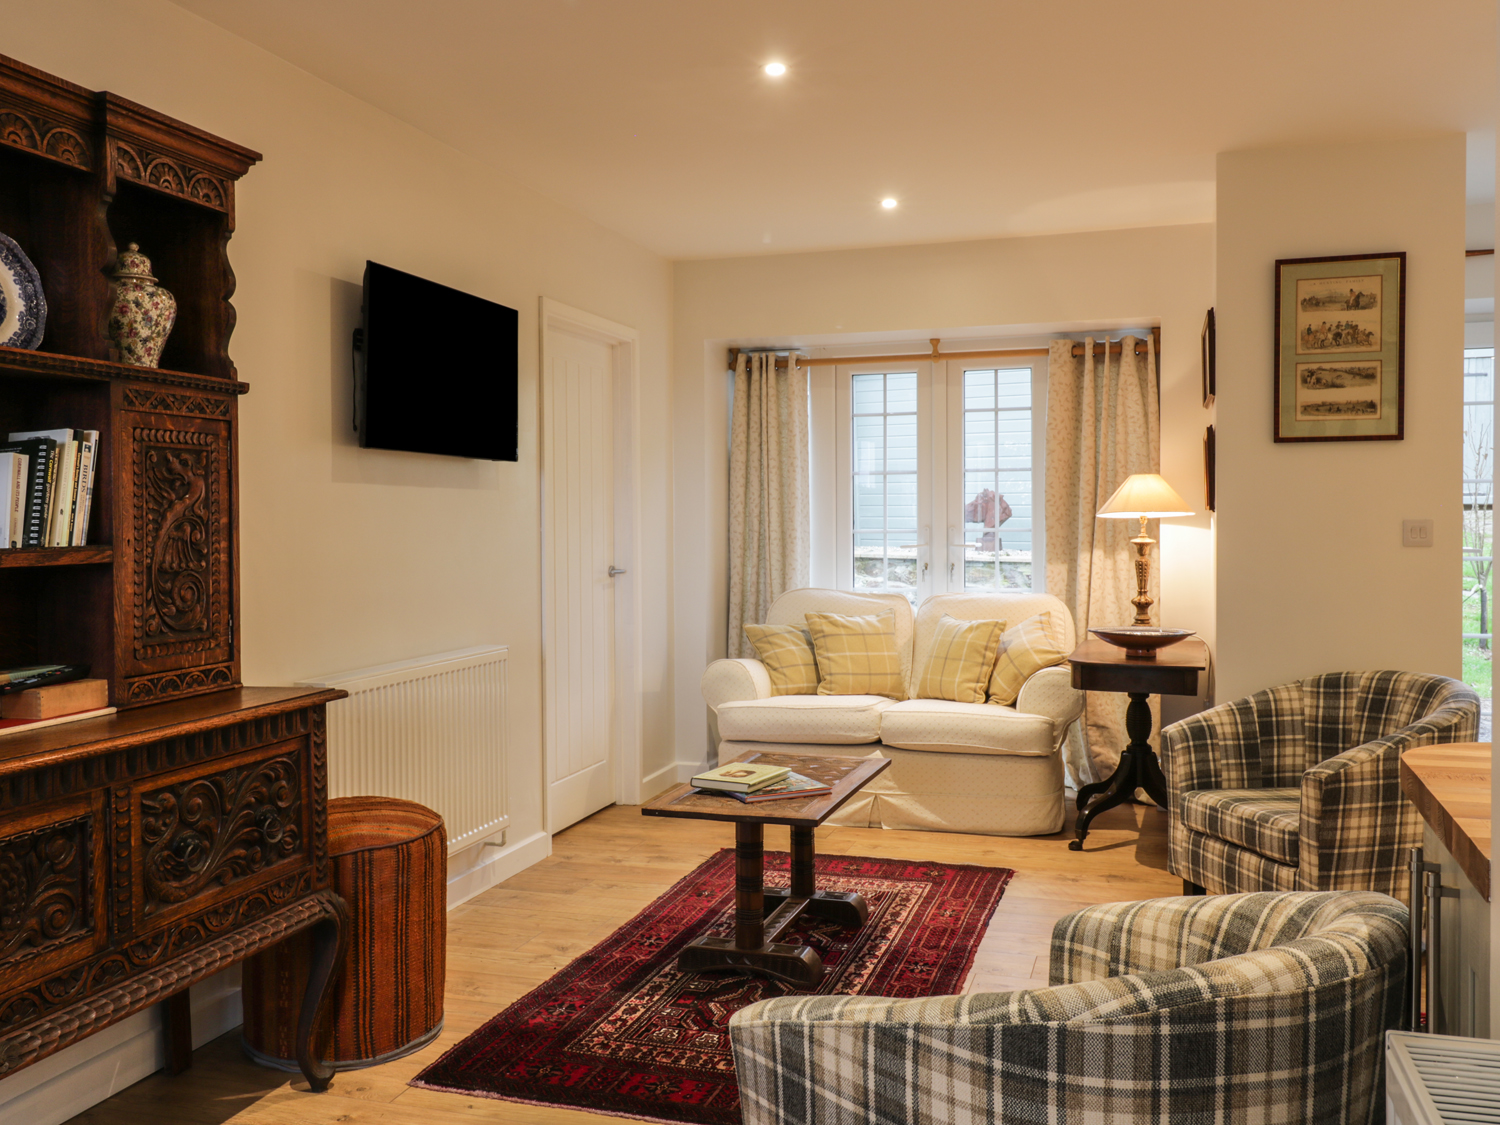 The Coach House holiday rental